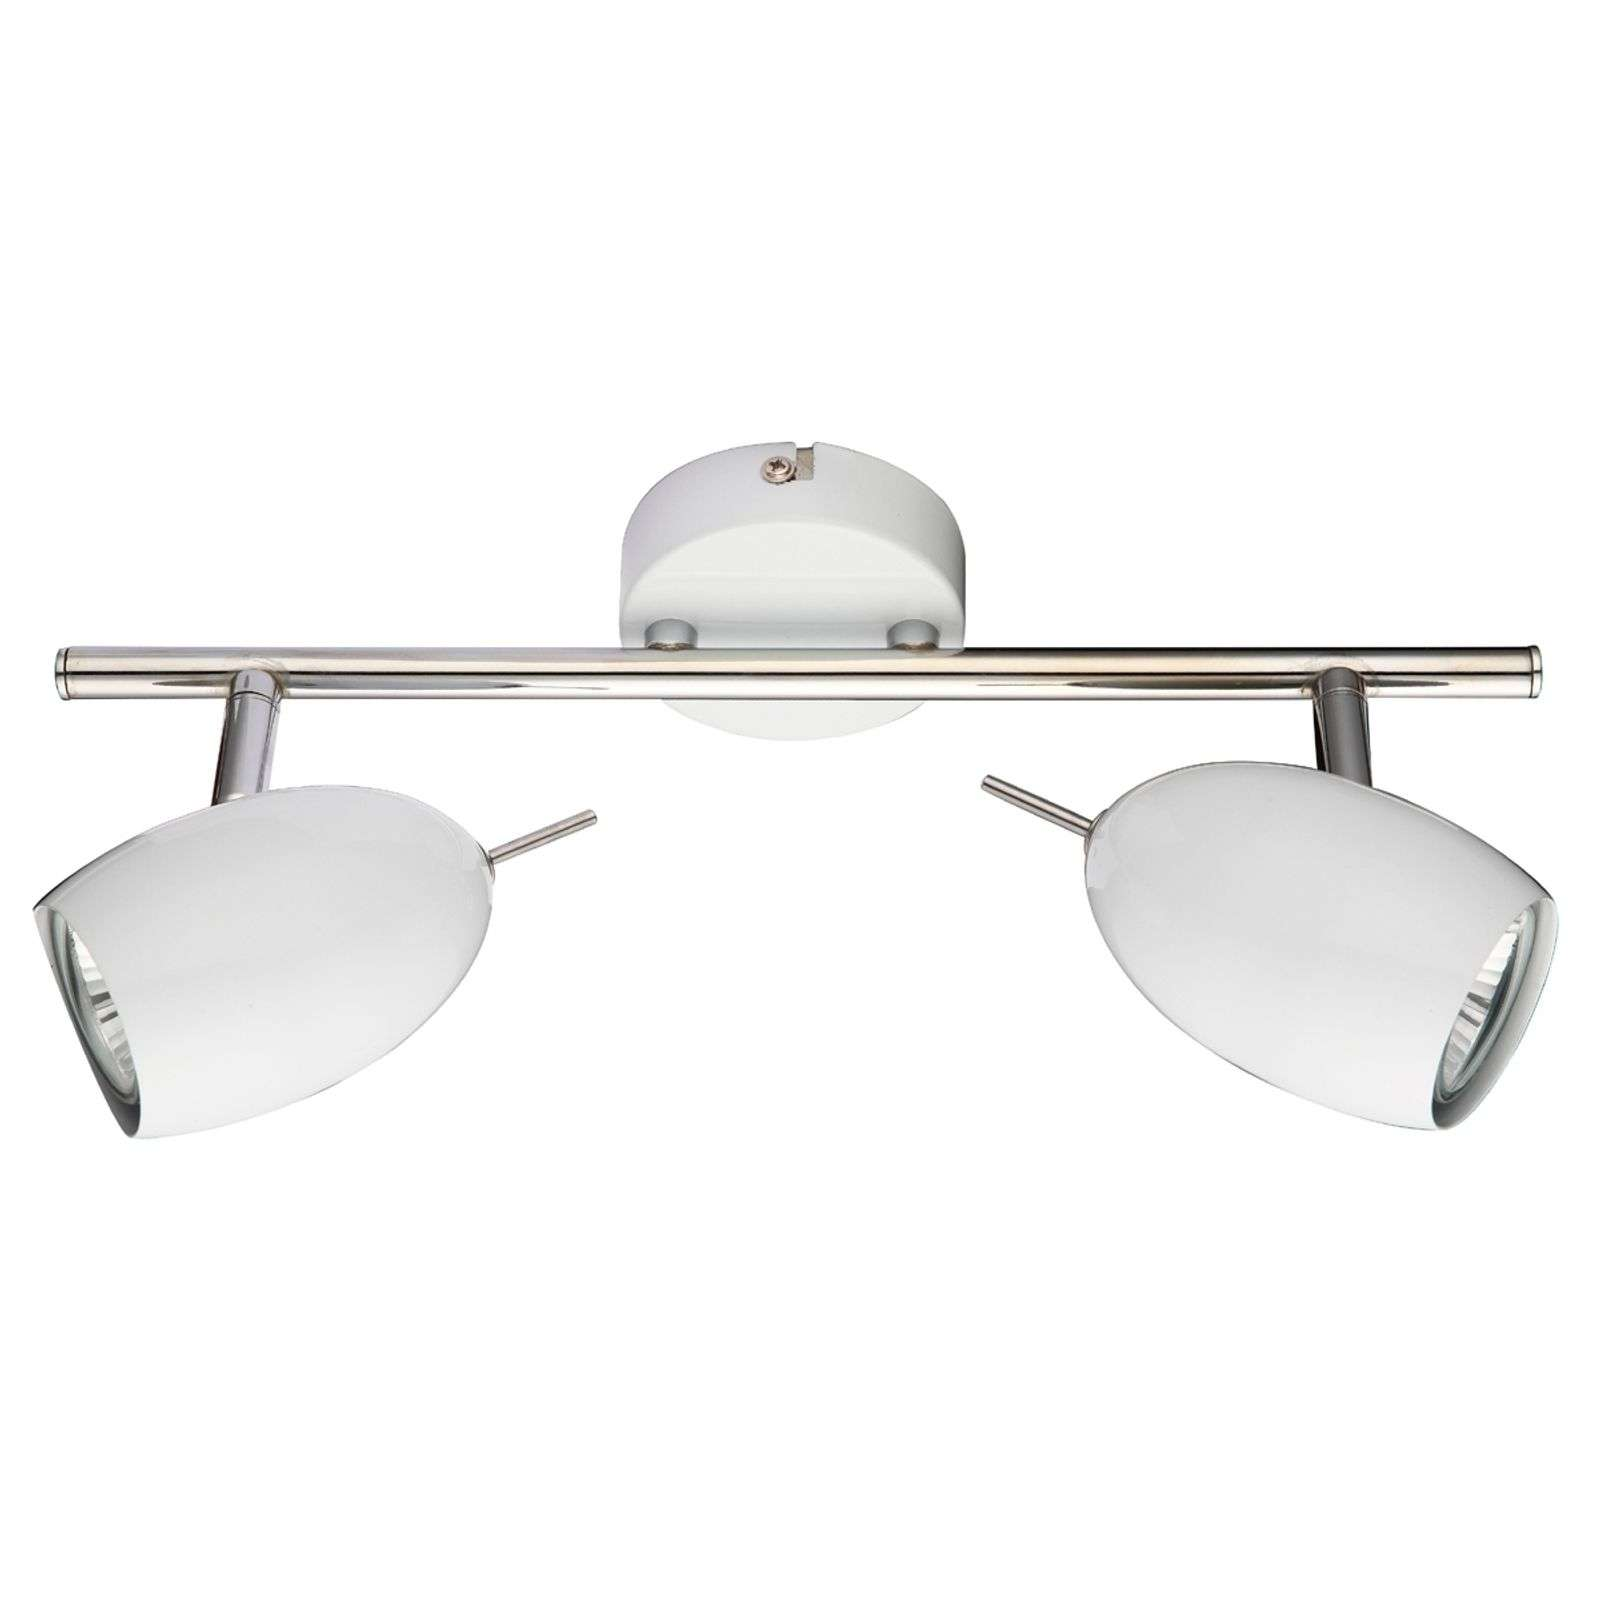 Lampada a trave LED QUINCY 2 luci, bianco